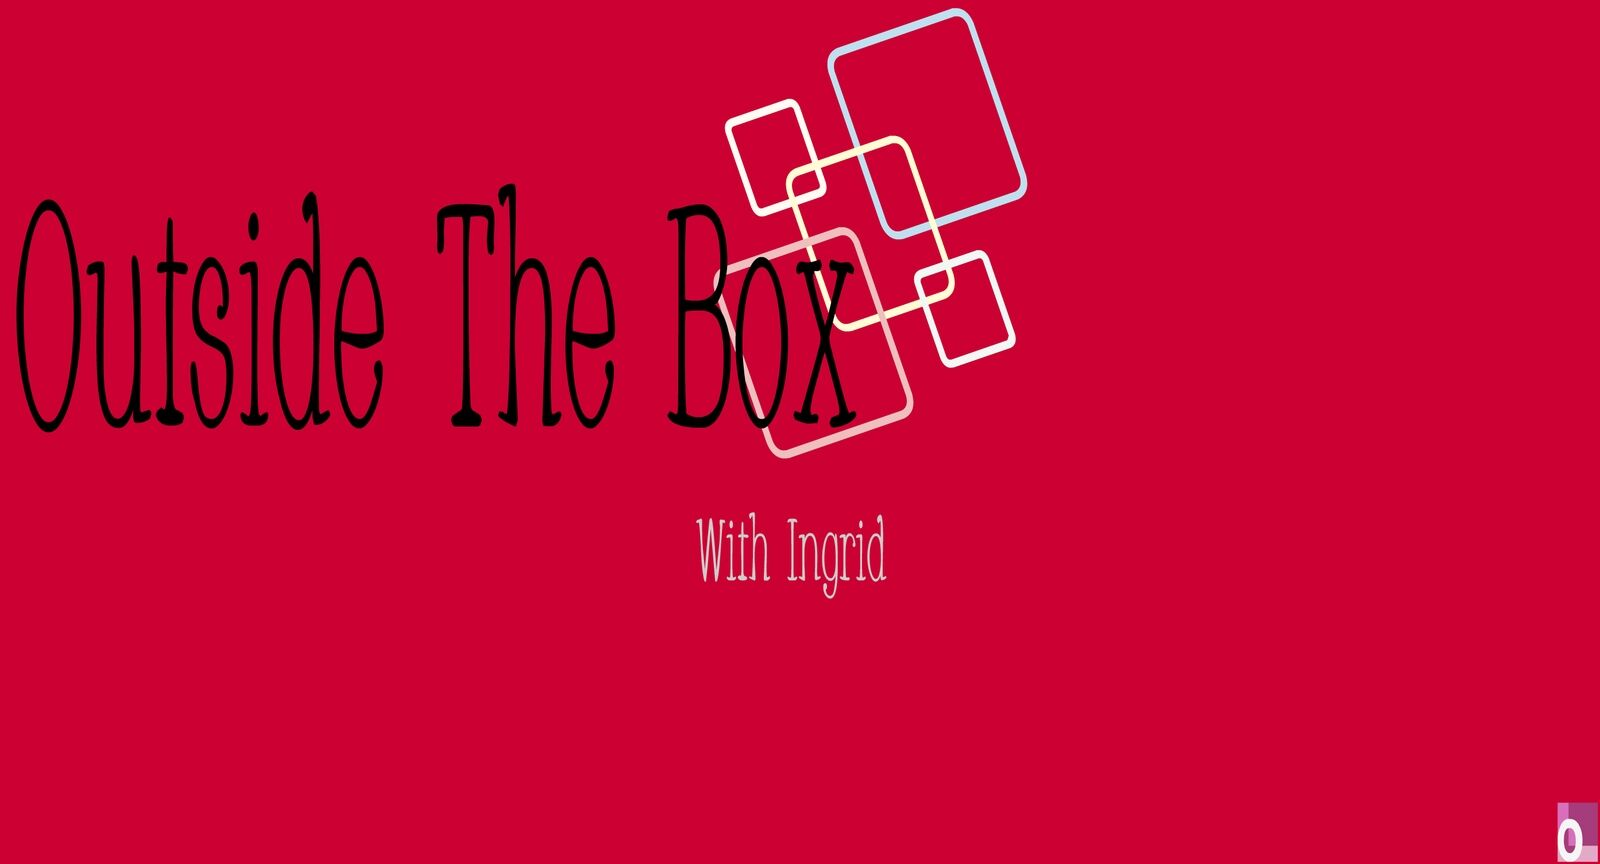 Outside The Box with Ingrid